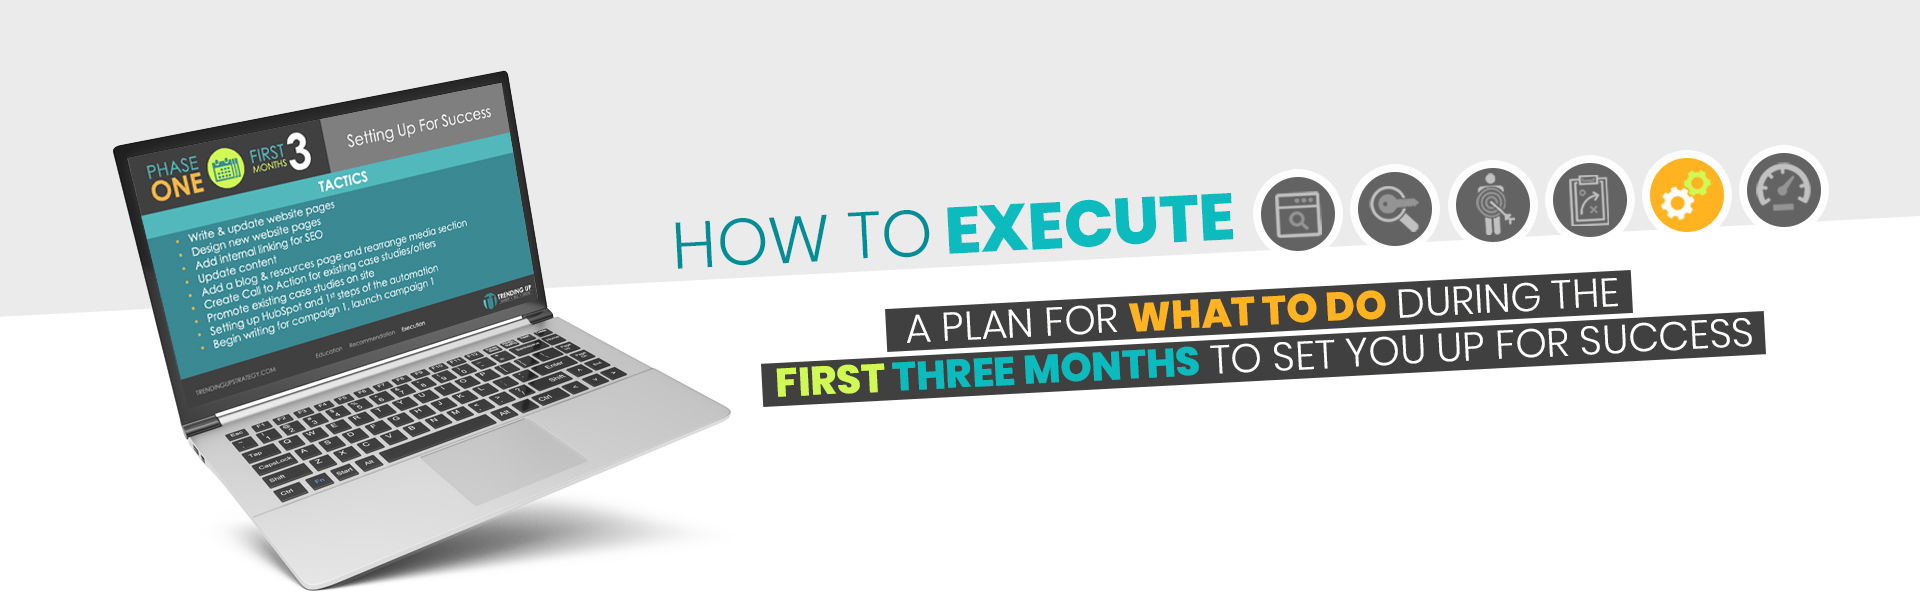 Execute - First 3